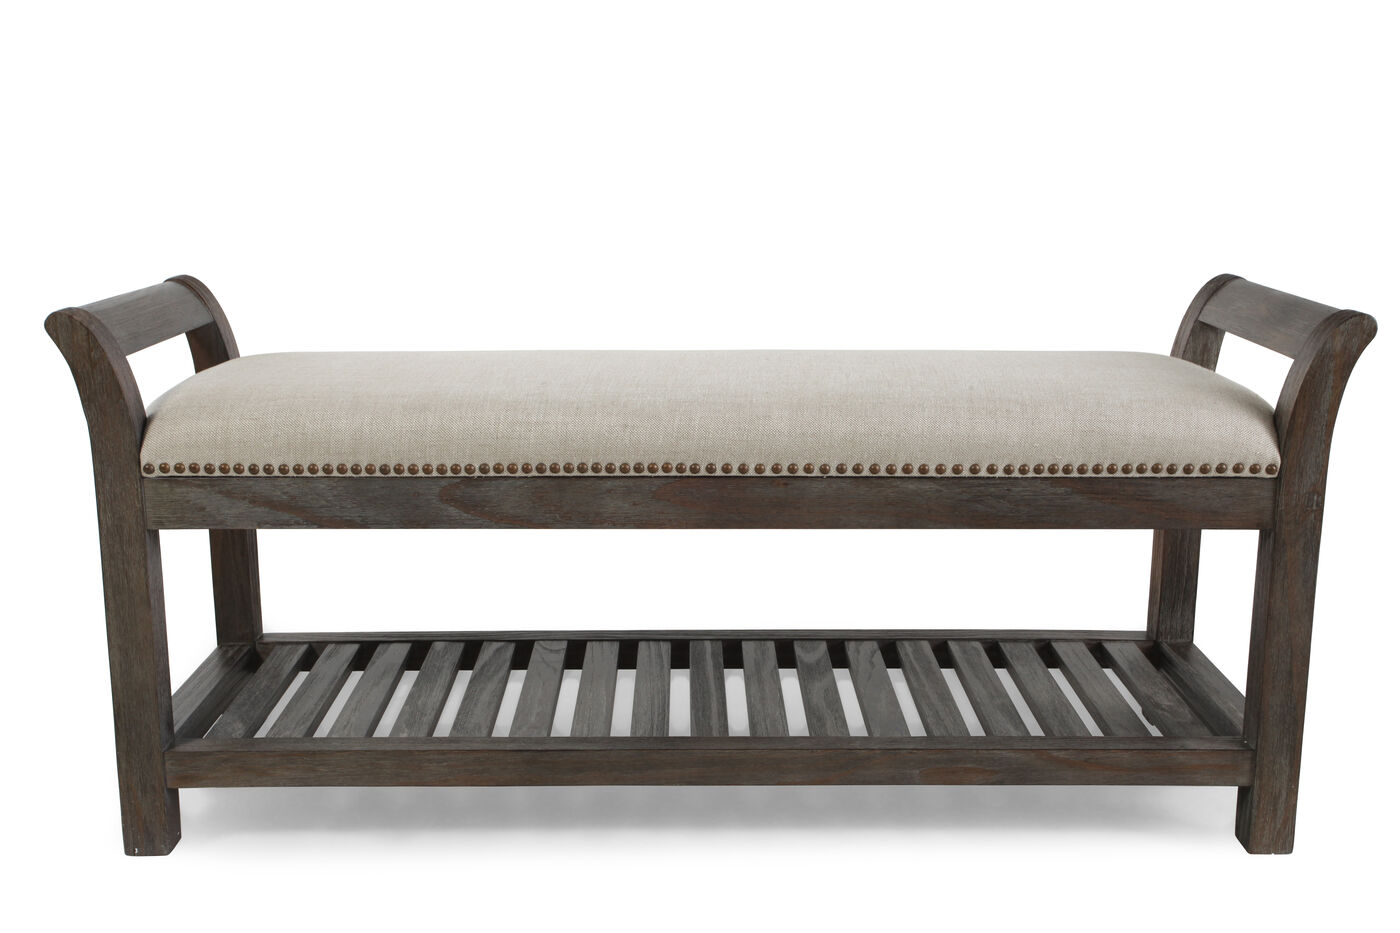 A R T Furniture St Germain Bed Bench